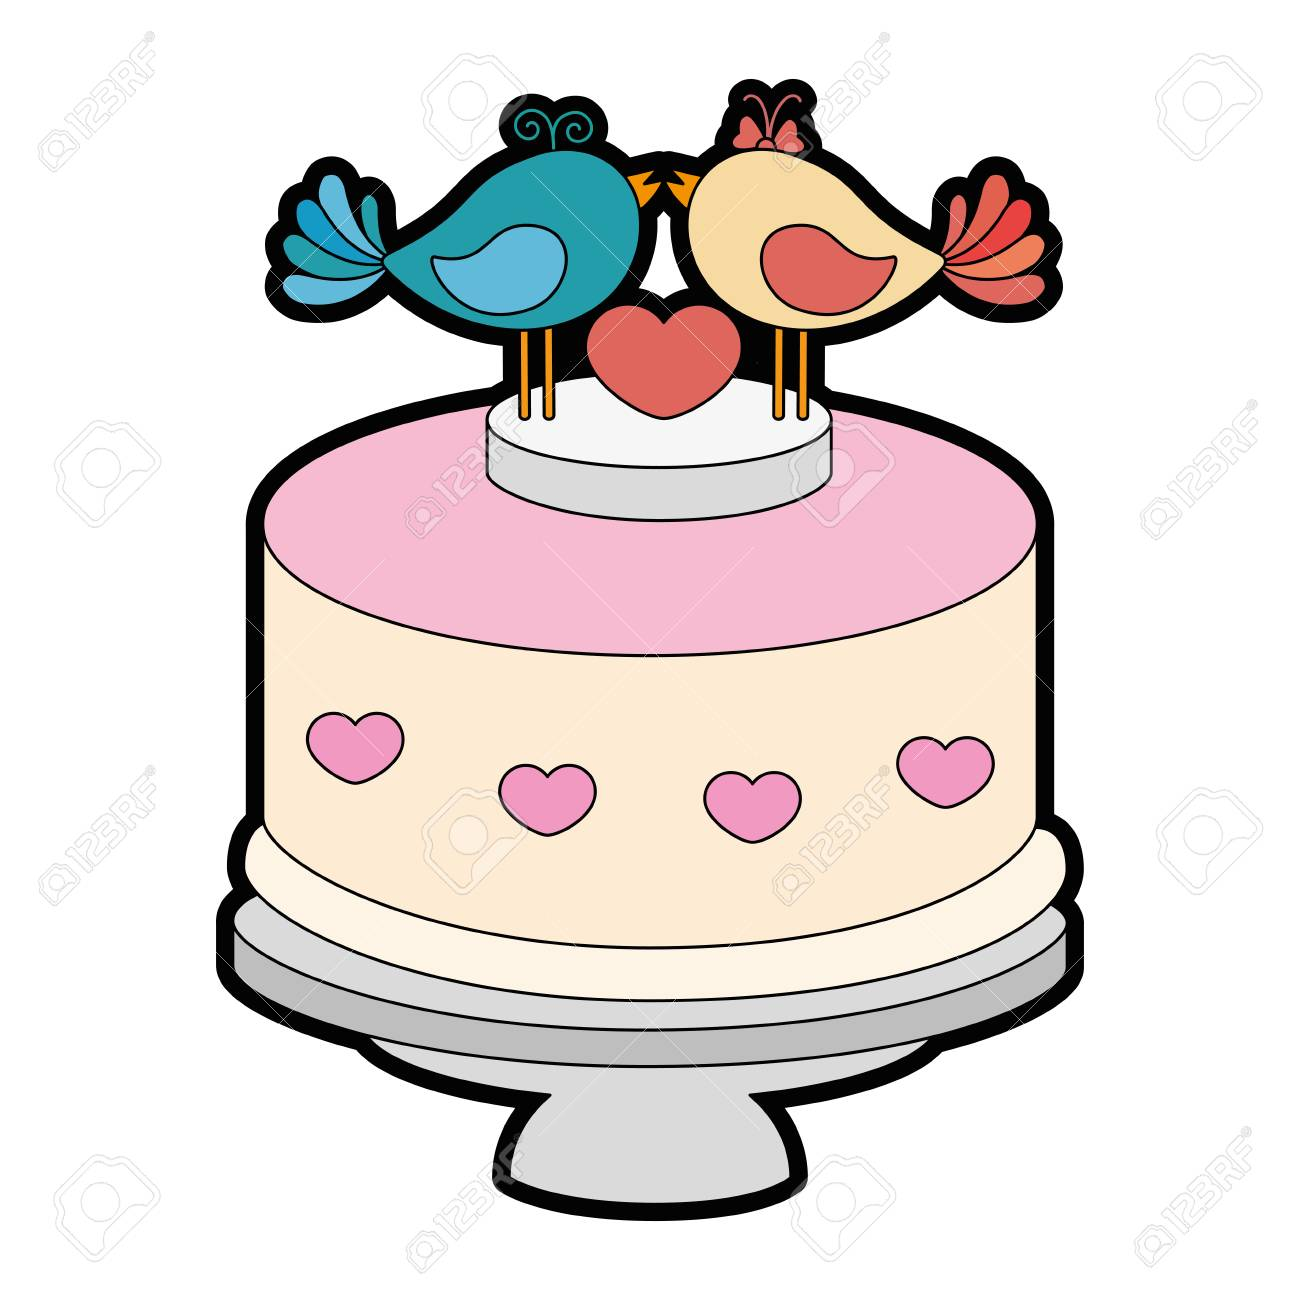 Wedding Cake With Decorative Couple Of Doves Icon Over White ...